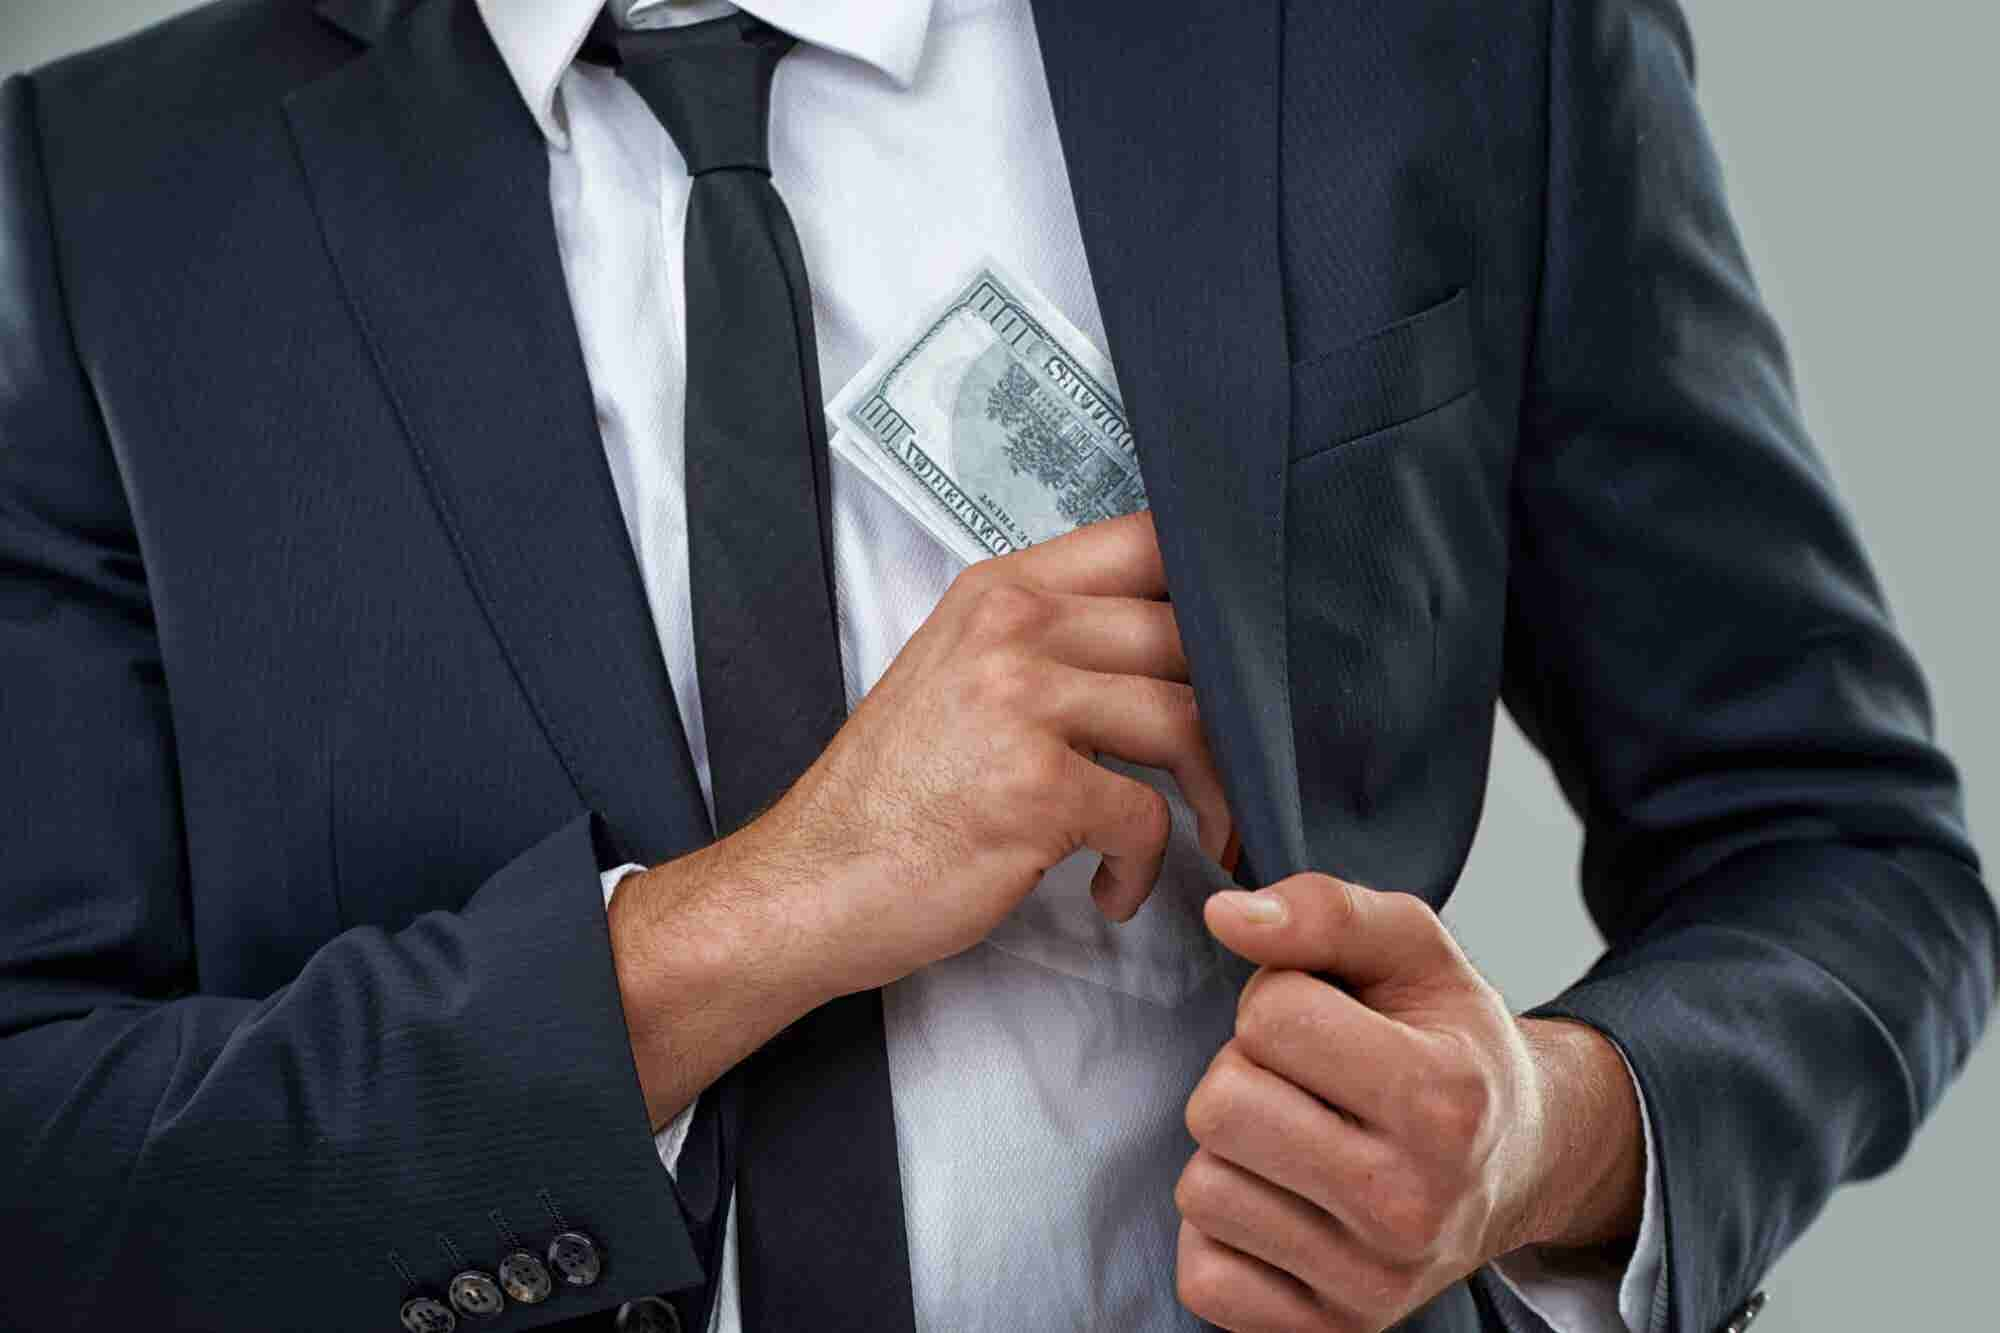 After More Than $700,000 Disappeared, They Launched the World's First Embezzlement Insurance